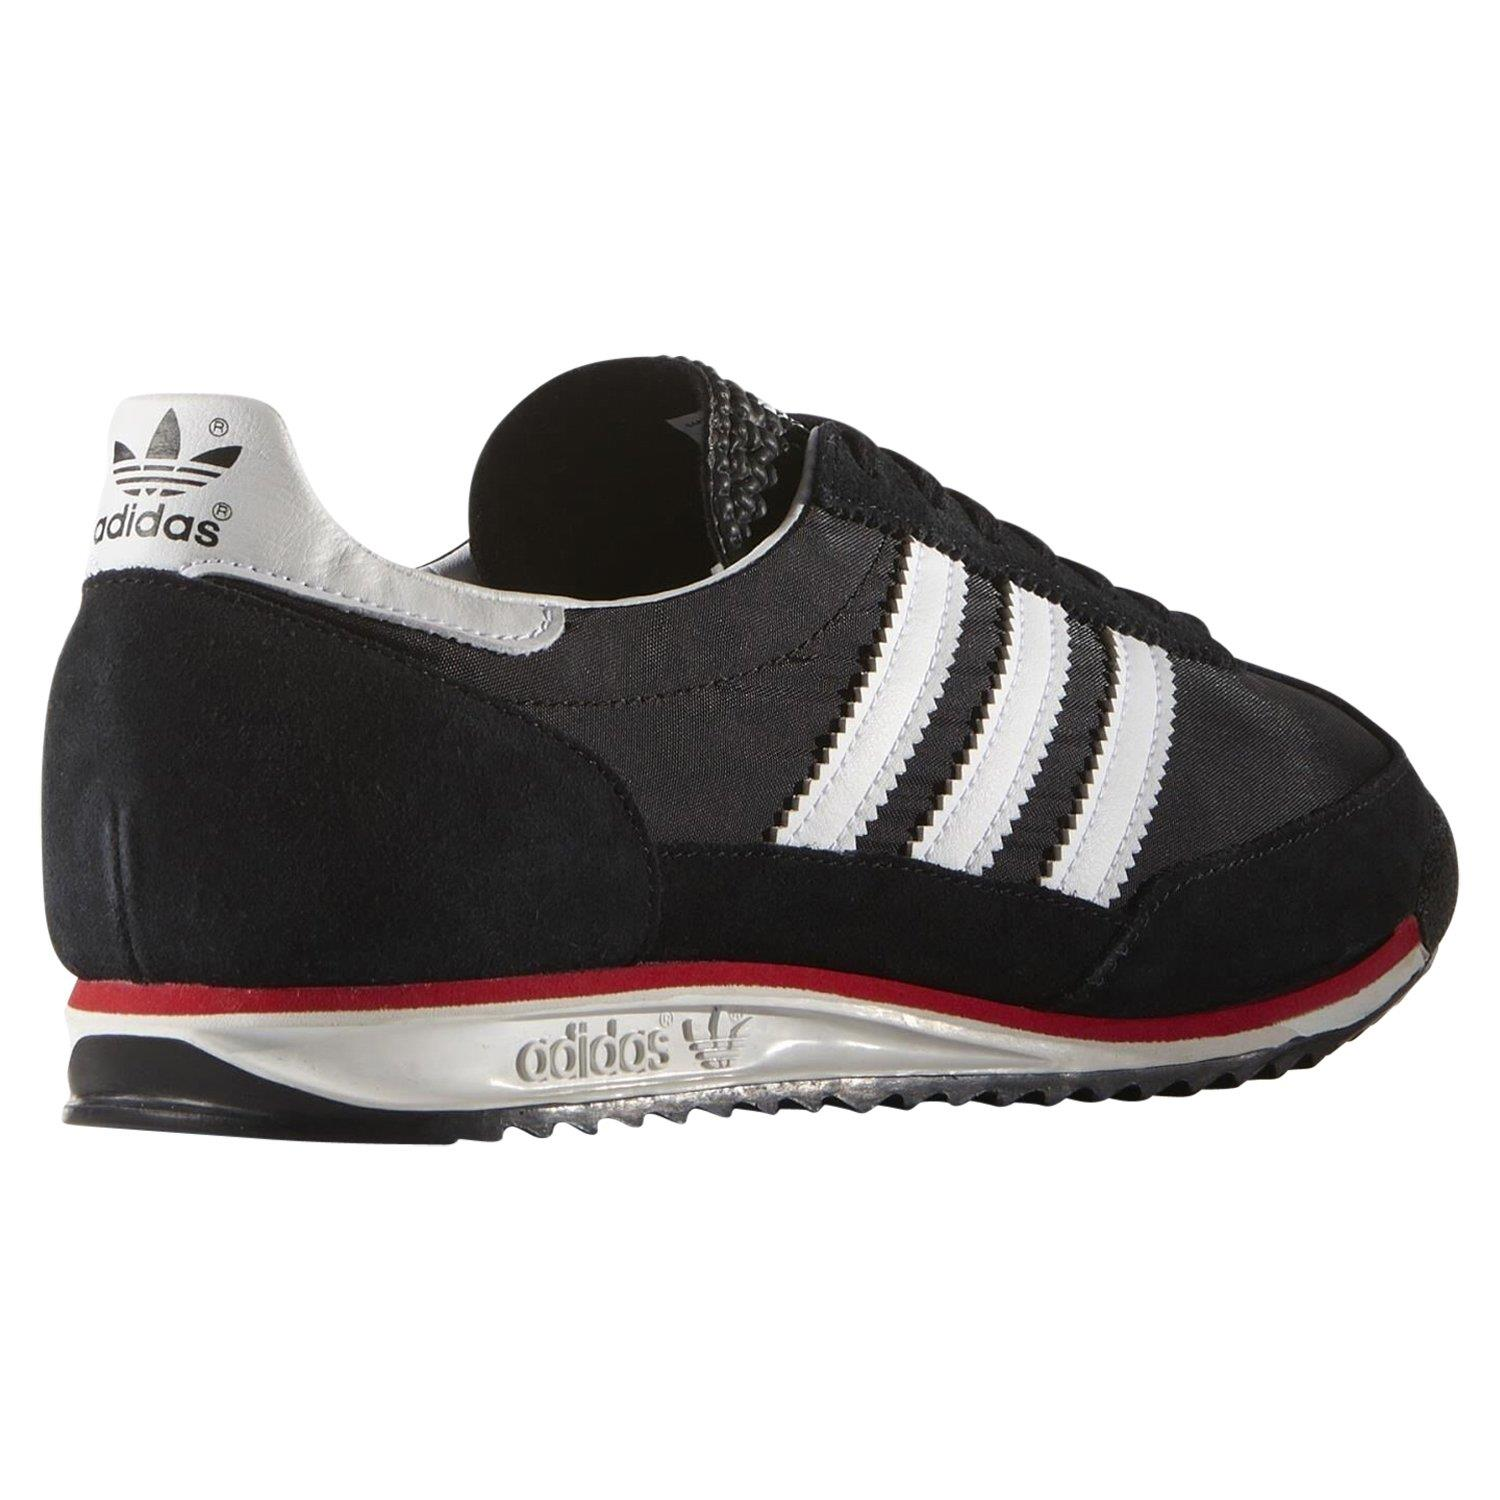 adidas-ORIGINALS-SL72-TRAINERS-MEN-039-S-TREFOIL-RETRO-VINTAGE-RARE-DEADSTOCK-SHOES miniature 3